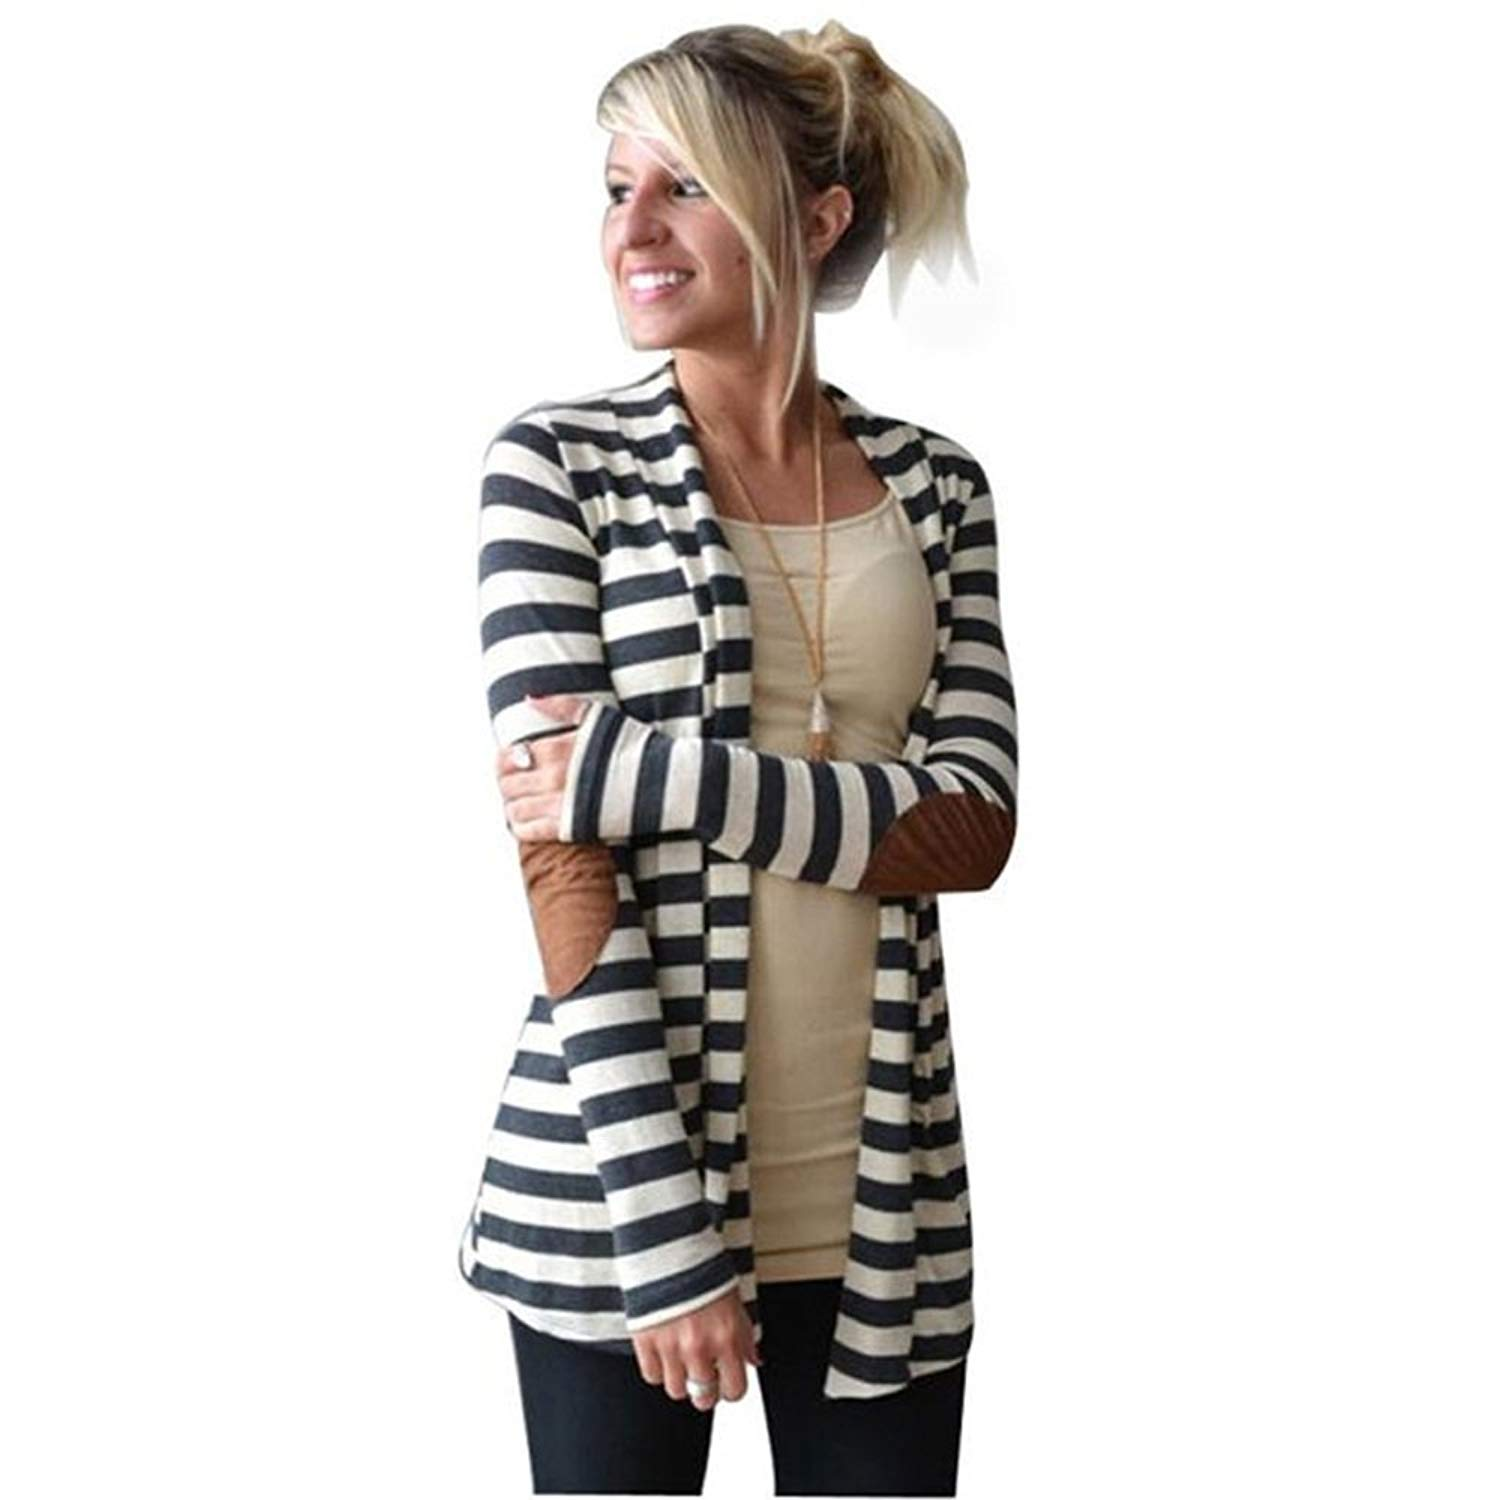 Women's Casual Long Sleeve Arm Patches Striped Cotton Blend Cardigan Jacket